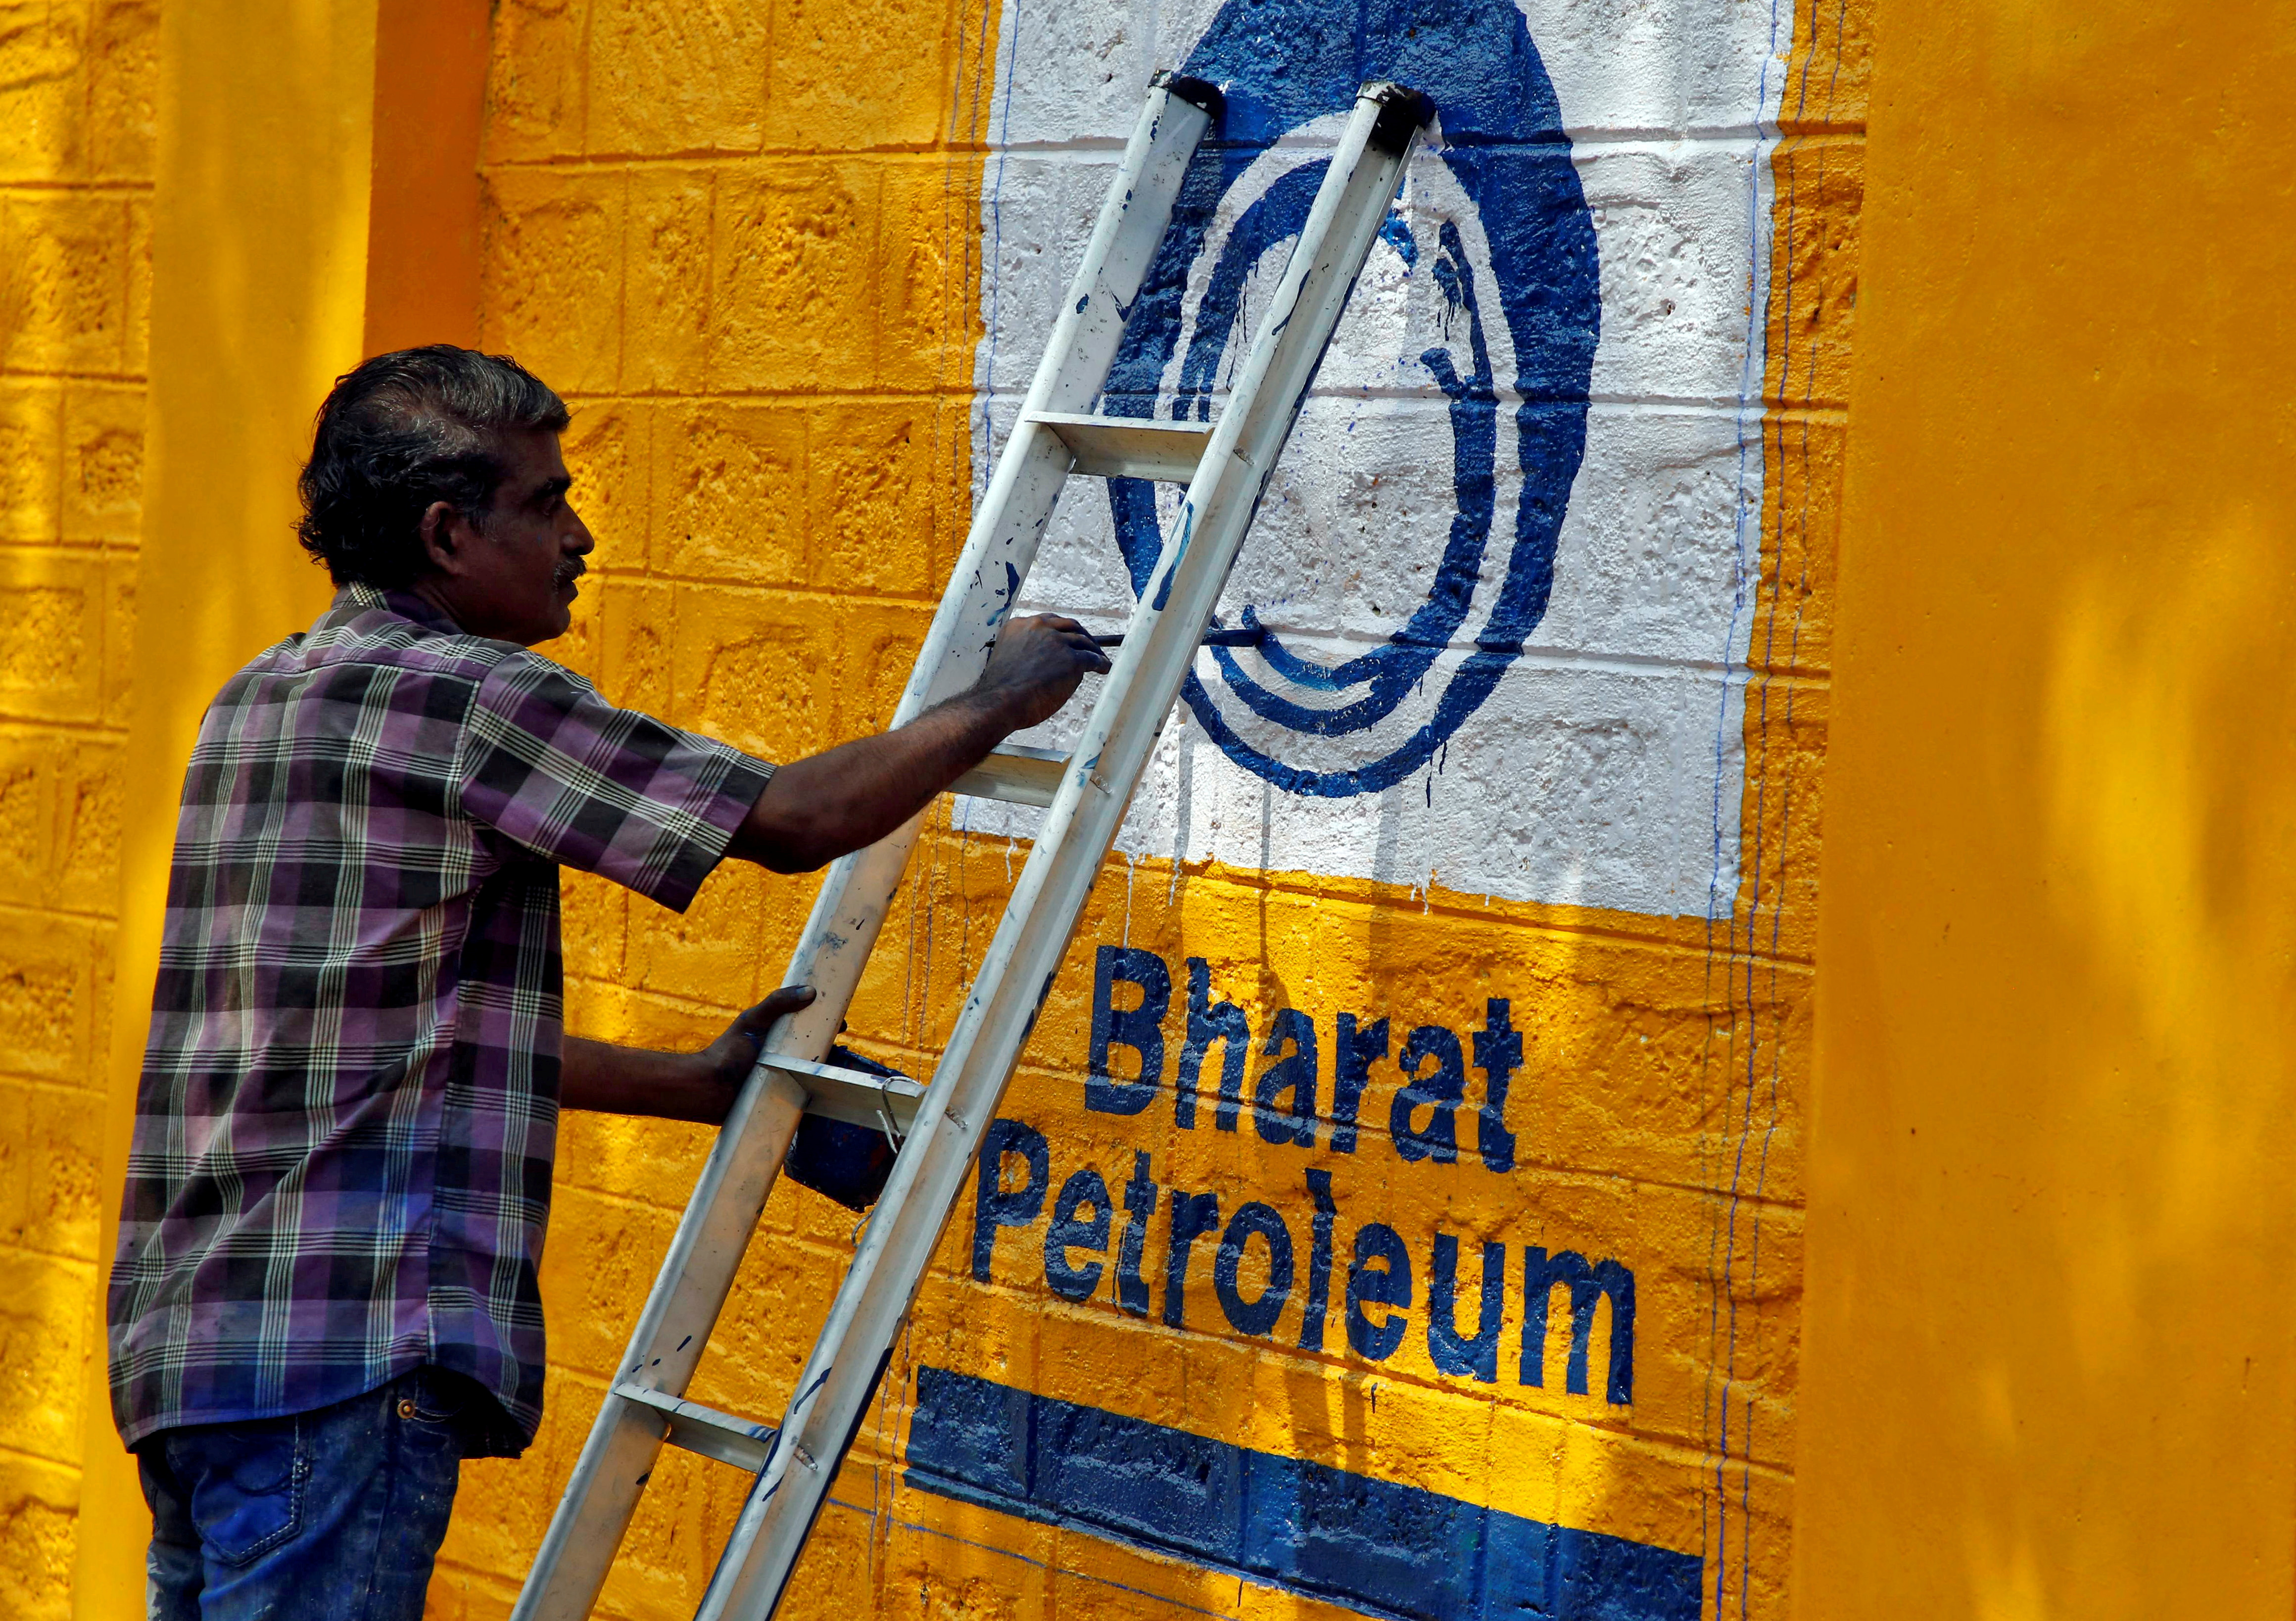 A man paints the logo of oil refiner Bharat Petroleum Corp (BPCL) on a wall on the outskirts of Kochi, India, November 21, 2019. REUTERS/Sivaram V